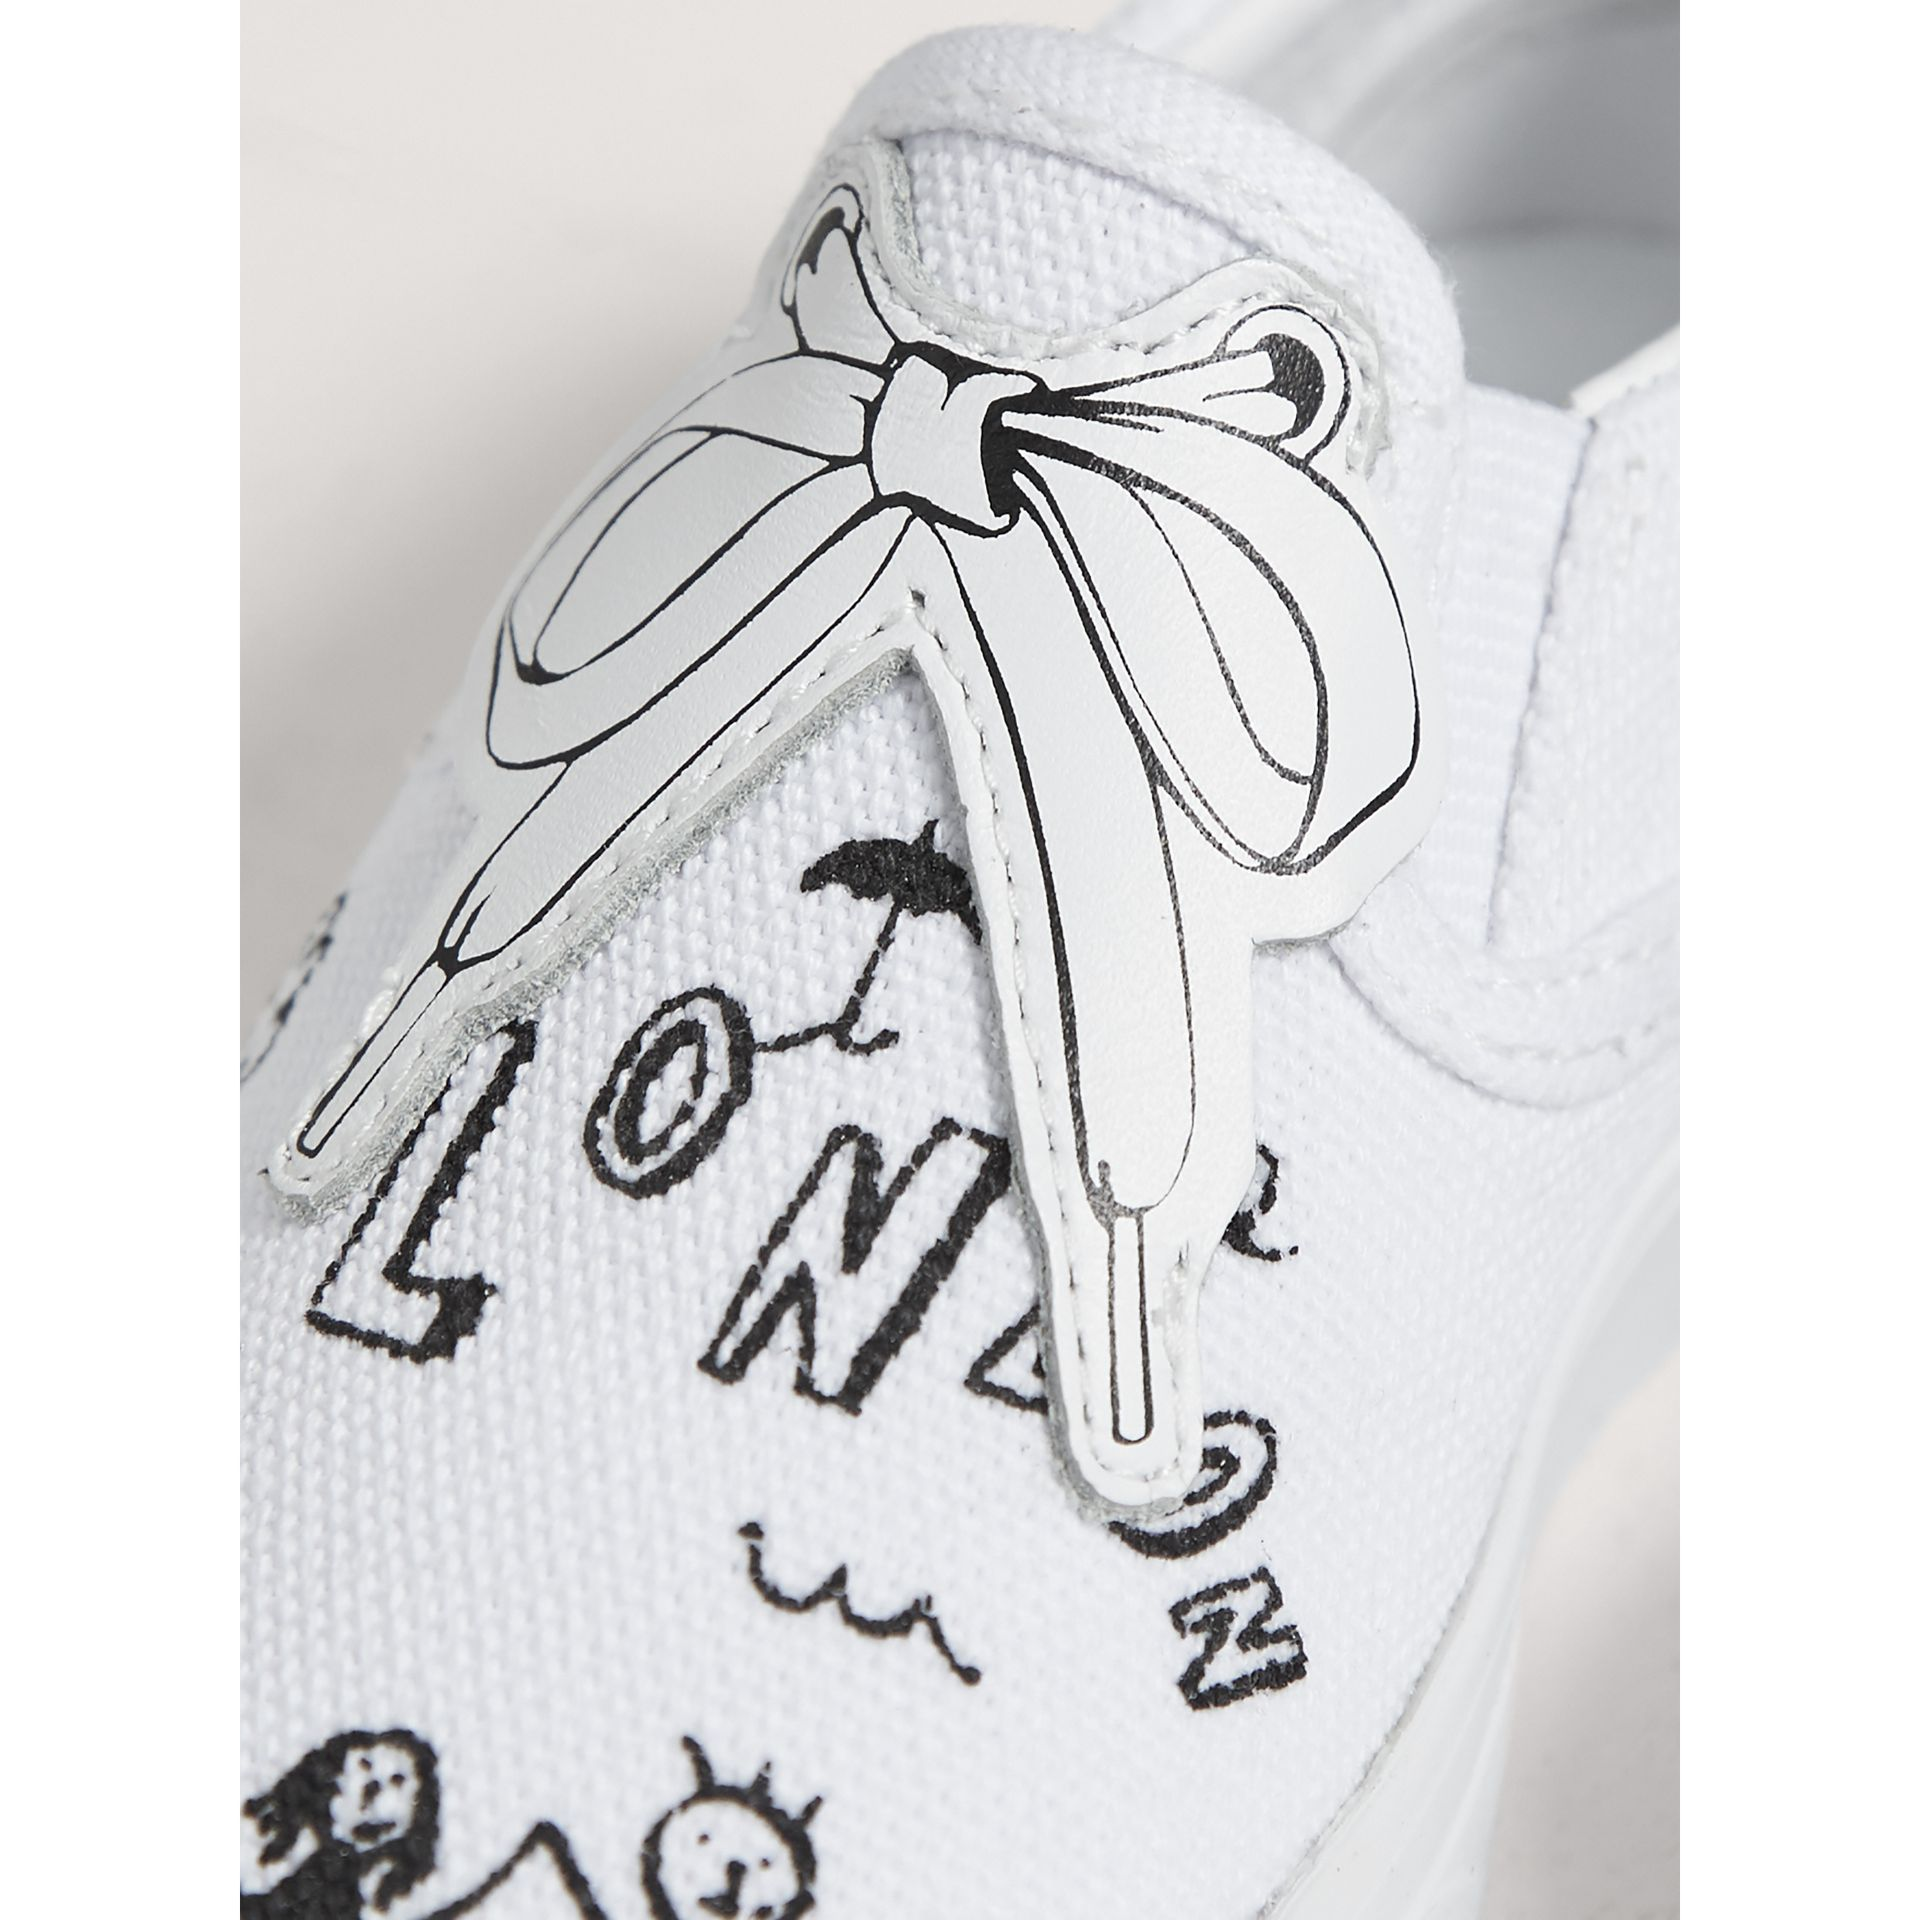 Sneakers sans lacets à imprimé Doodle (Blanc Optique) | Burberry - photo de la galerie 2